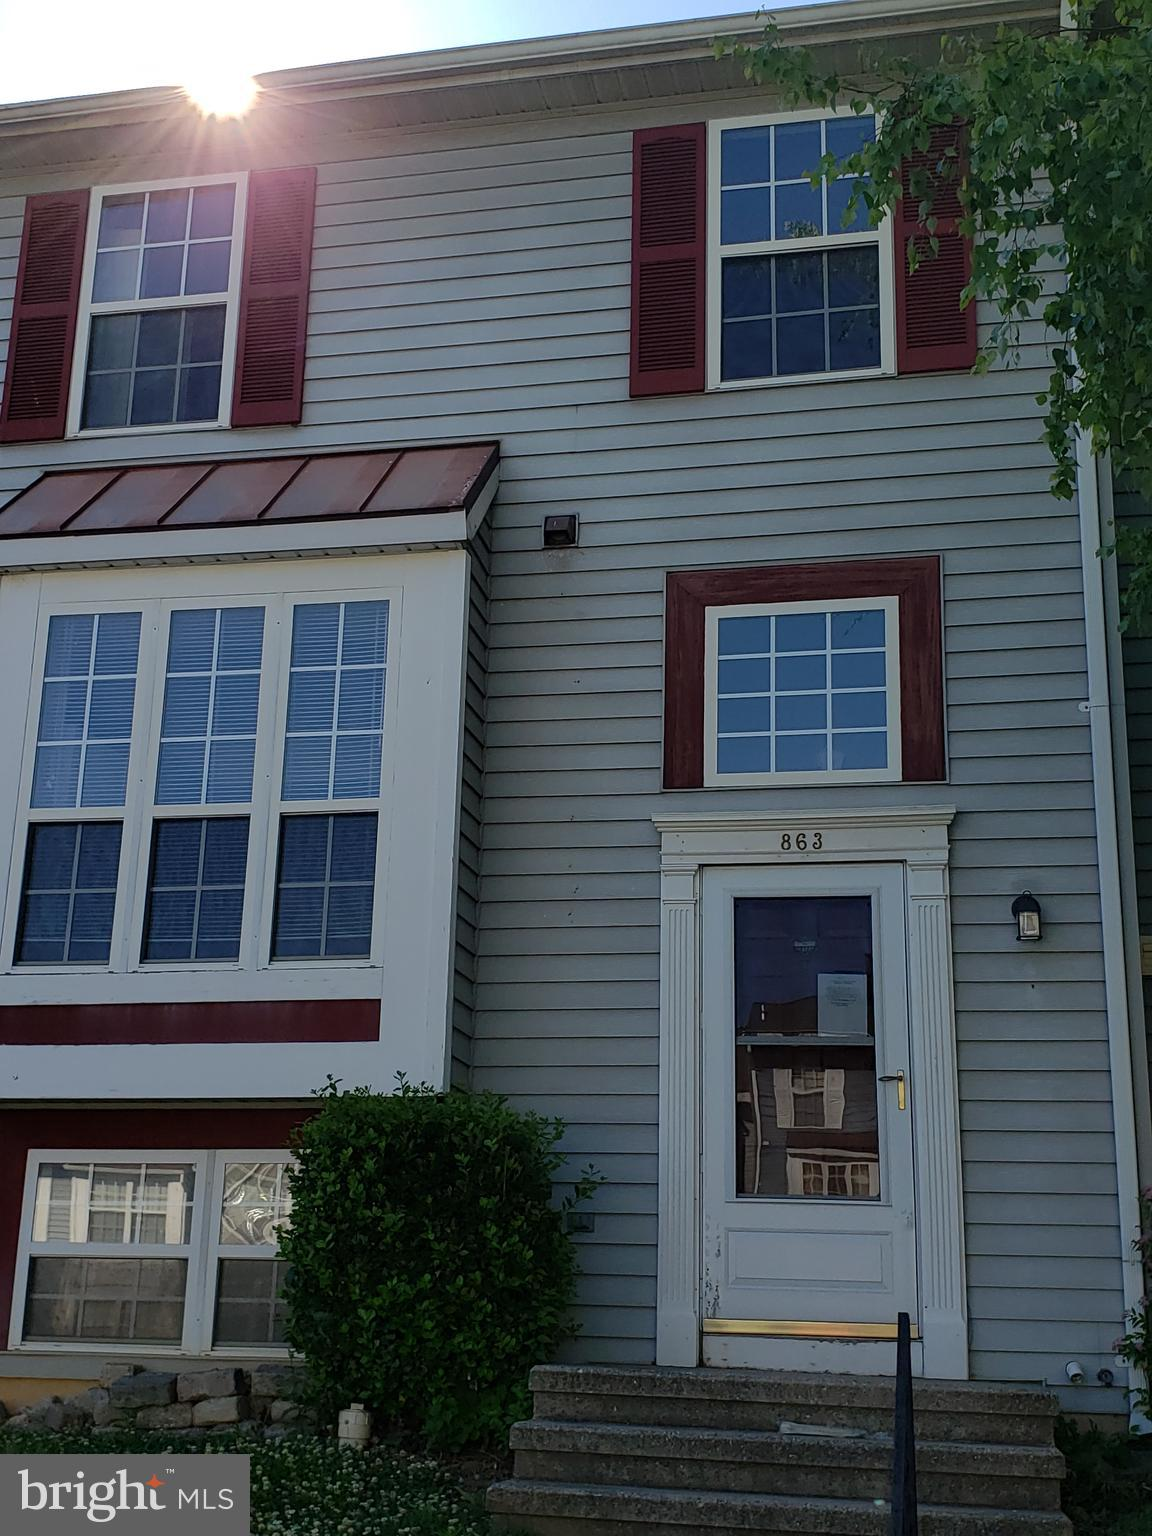 "**** FORECLOSURE**** THIS 3 BEDROOM, ONE FULL AND ONE HALF BATH INTERIOR TOWNHOUSE IS OFFERED ""AS IS"